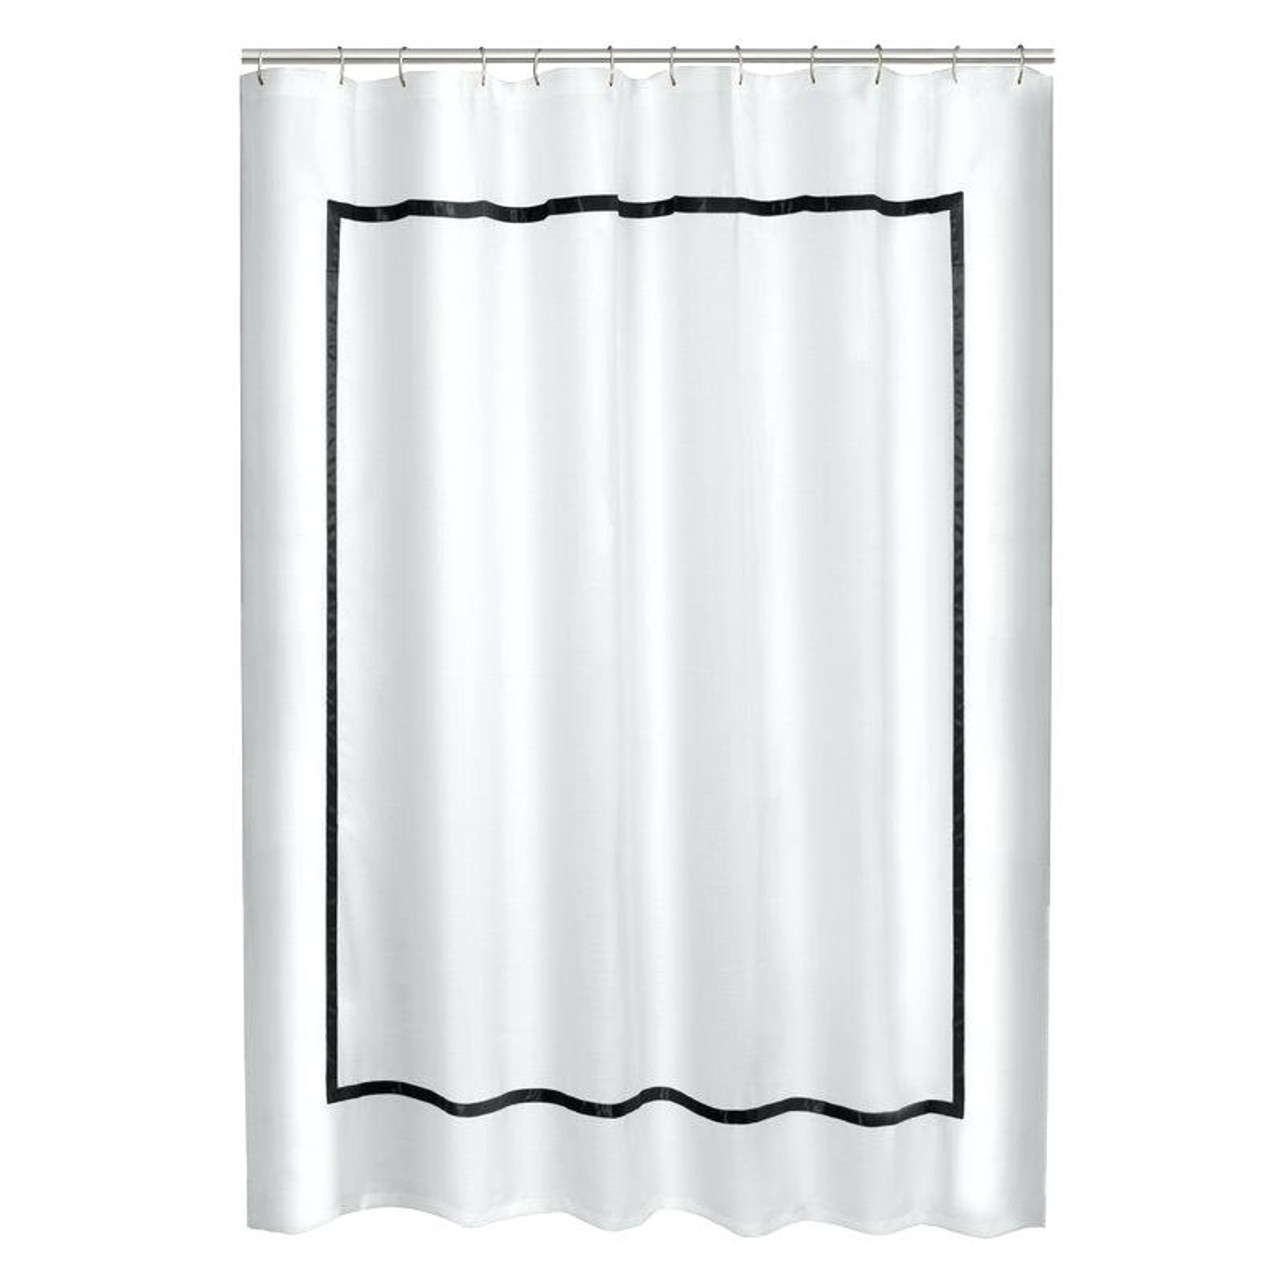 White linen shower curtain with border trim, hotel border shower curtain